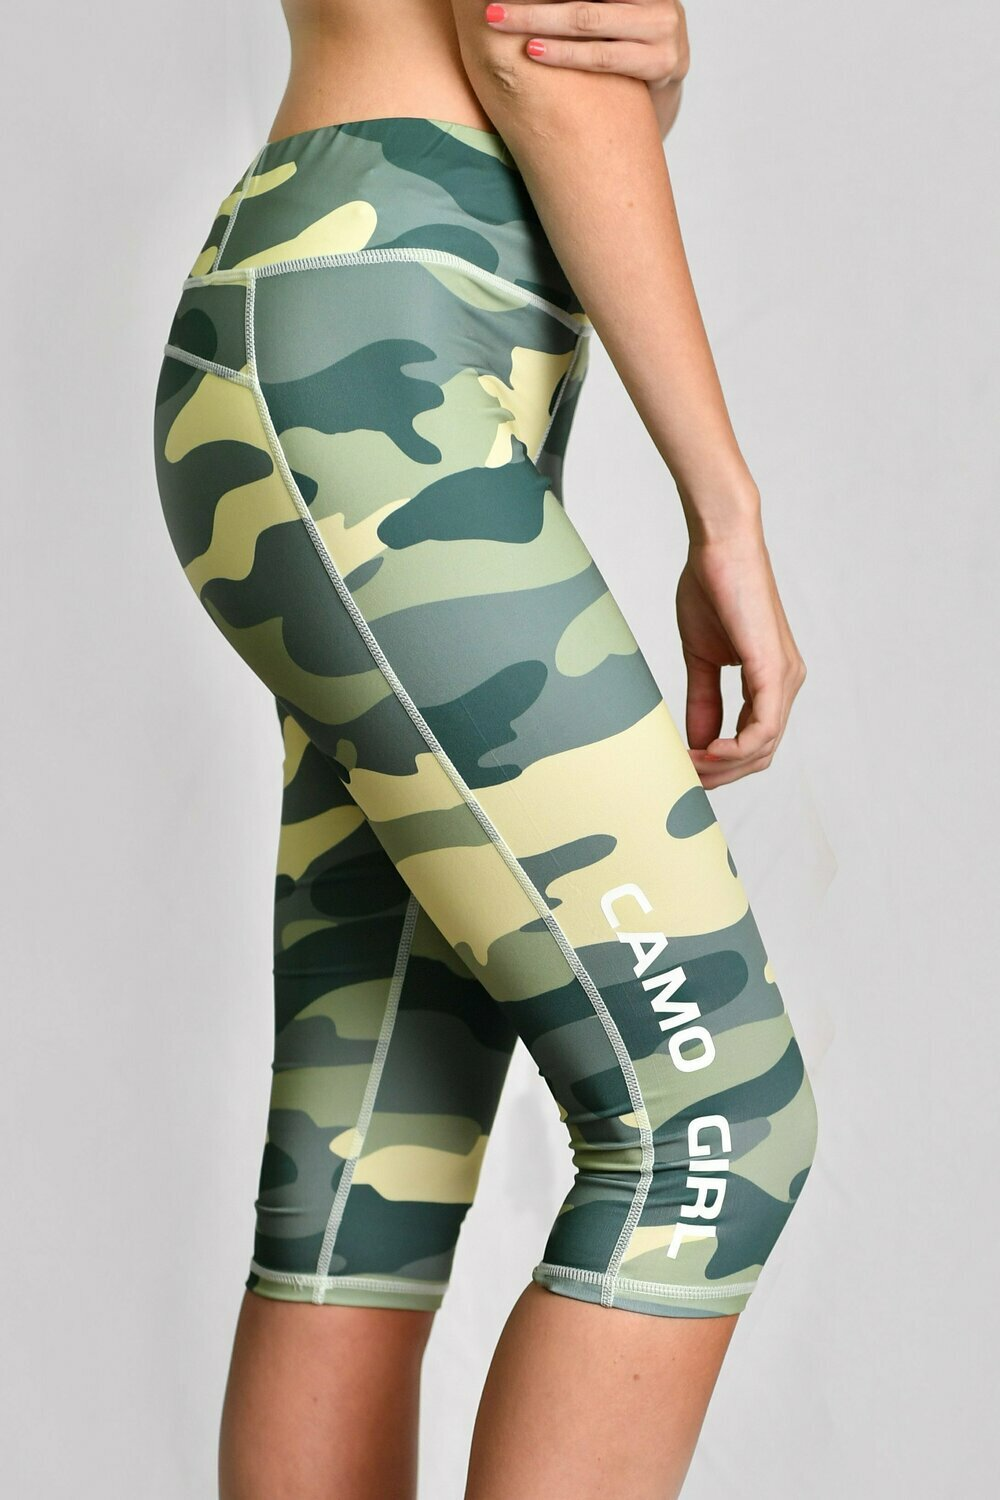 GP Camo Girl 3/4 Leggings